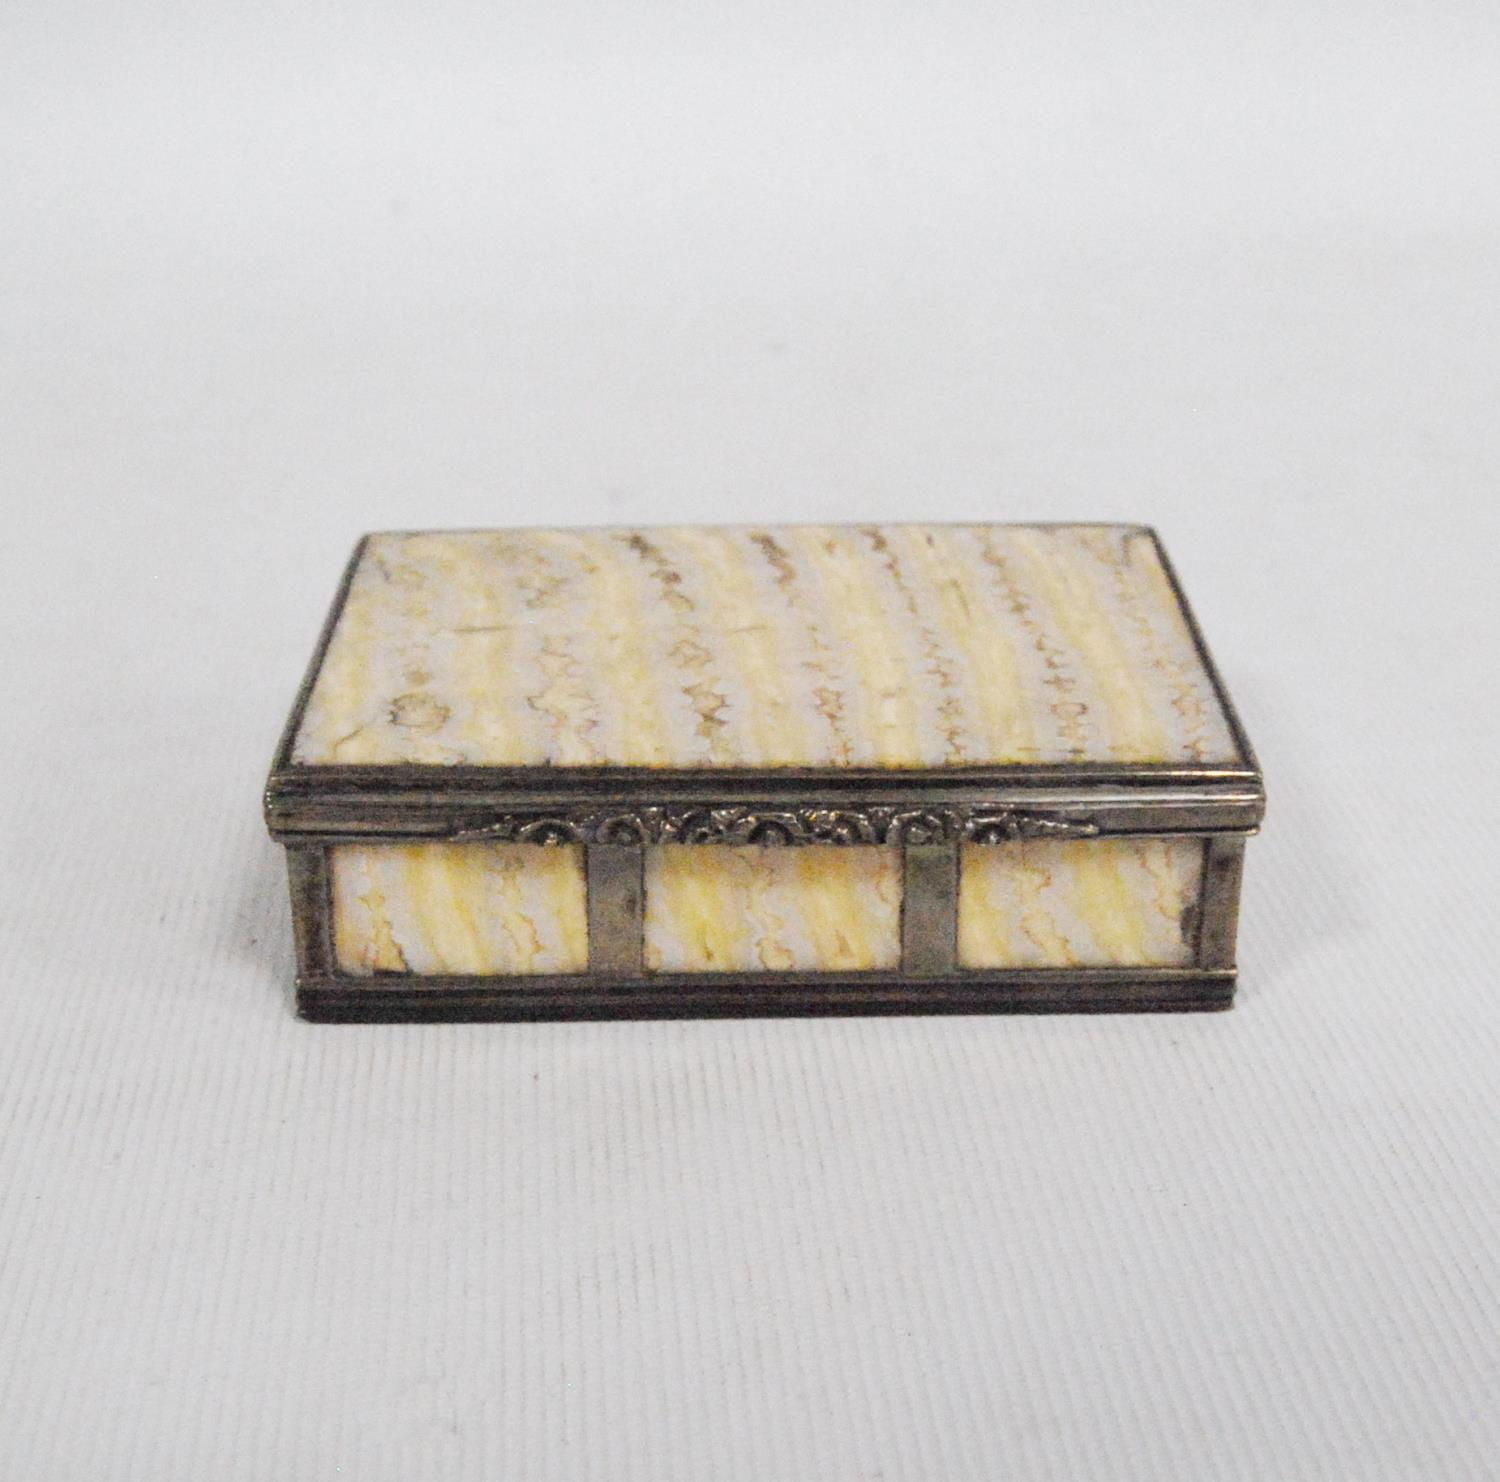 Elephant's tooth box with white metal banding and floral clasp, 7.5cm wide, 2cm high and 5.5cm deep. - Image 3 of 3